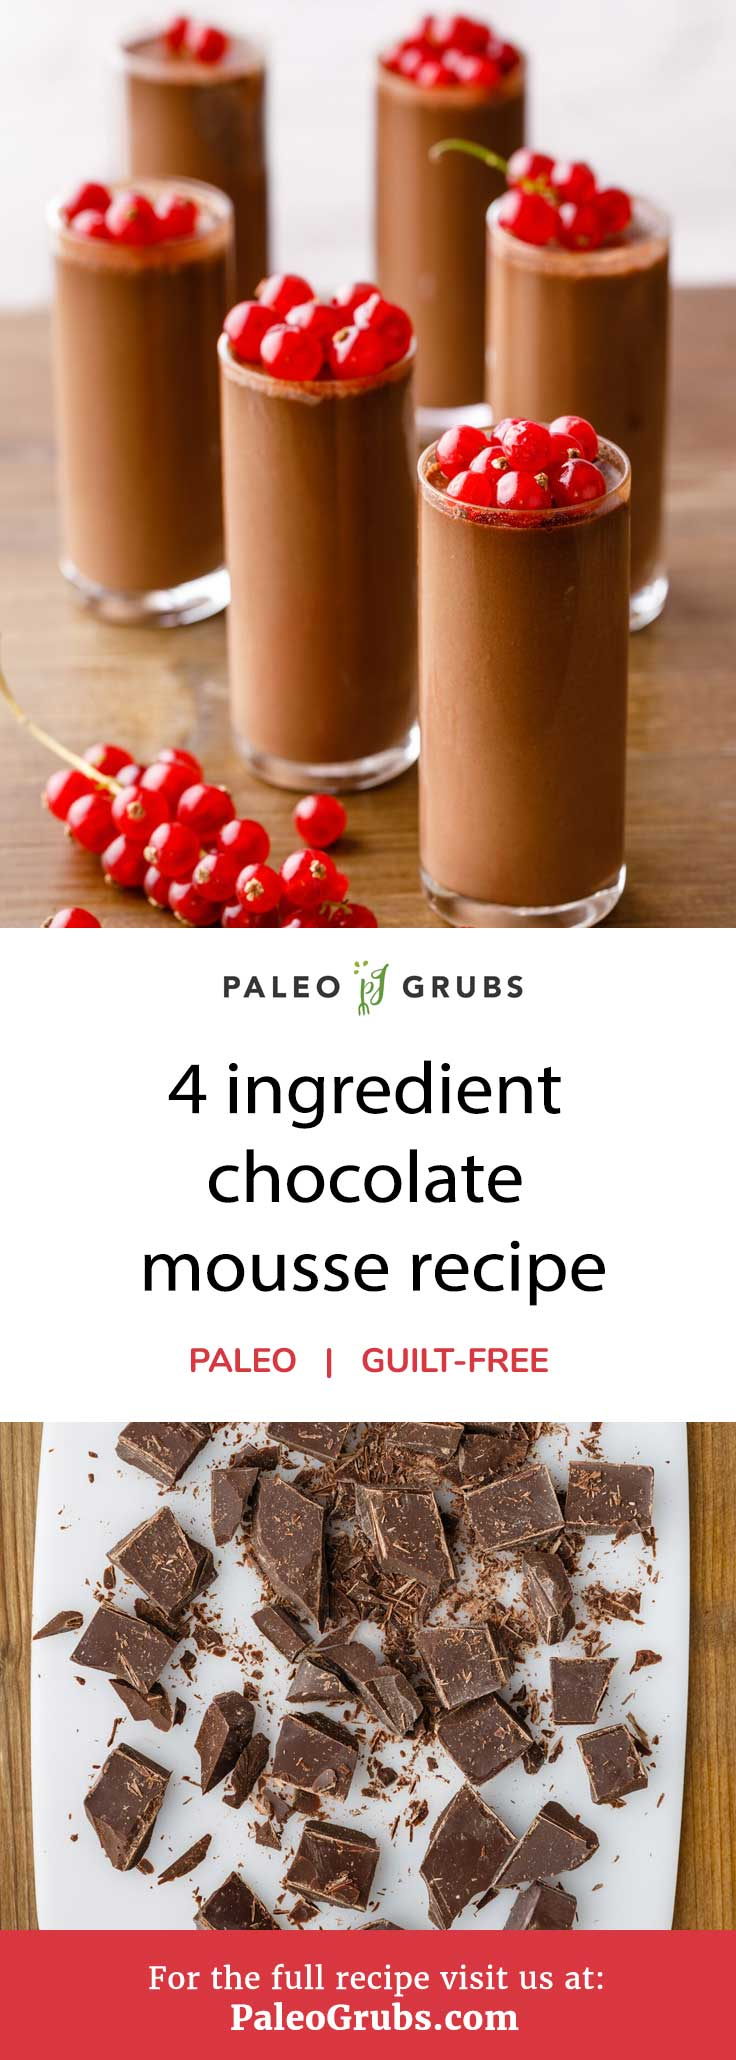 Chocolate mousse is one of those desserts that's almost too perfect. It can be light and fluffy, or thick and creamy depending on how you make it. Today I've got a delightful paleo-friendly version that requires only four ingredients to make one outstanding mousse. Best of all? It only takes about 15 minutes to prepare.